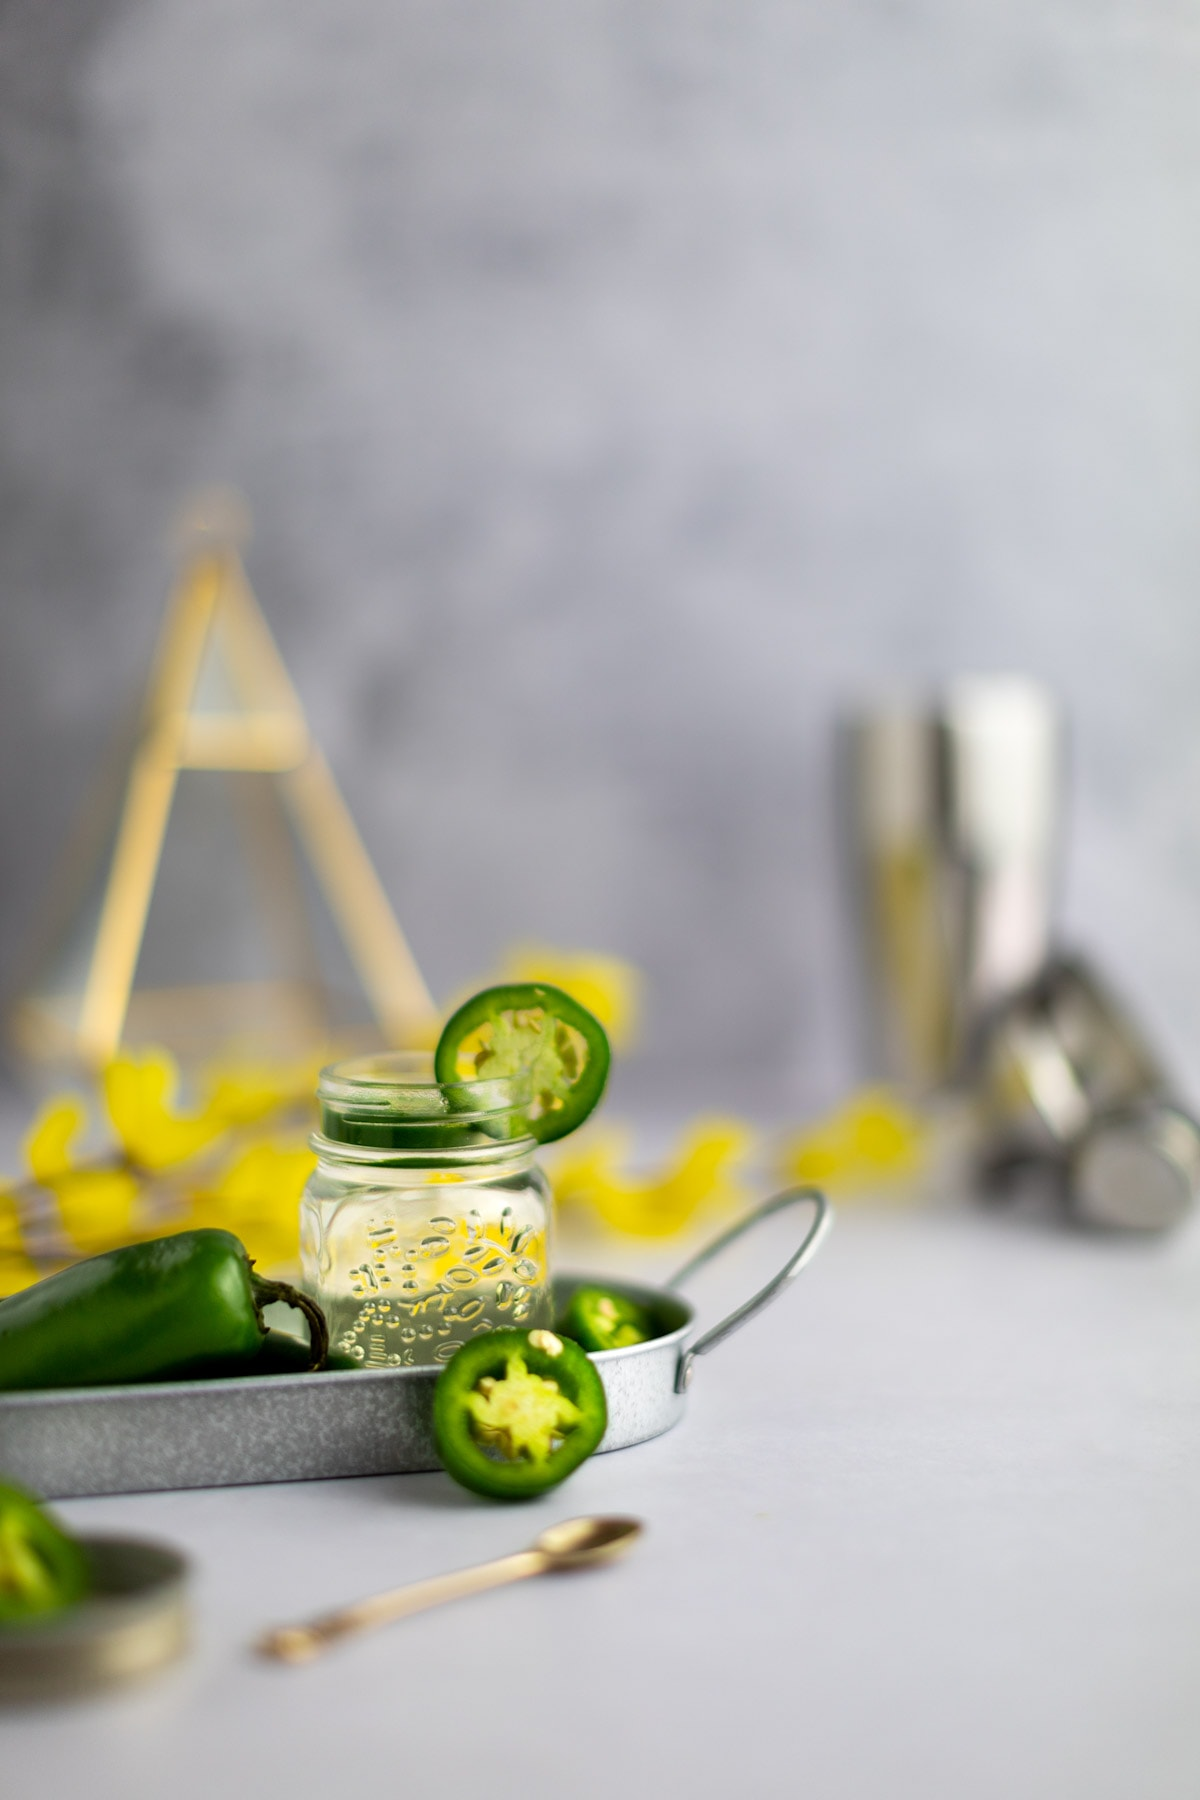 Simple syrup in a glass jar on a tray, with a cocktail shaker and yellow flowers in the background, gold spoon in foreground.